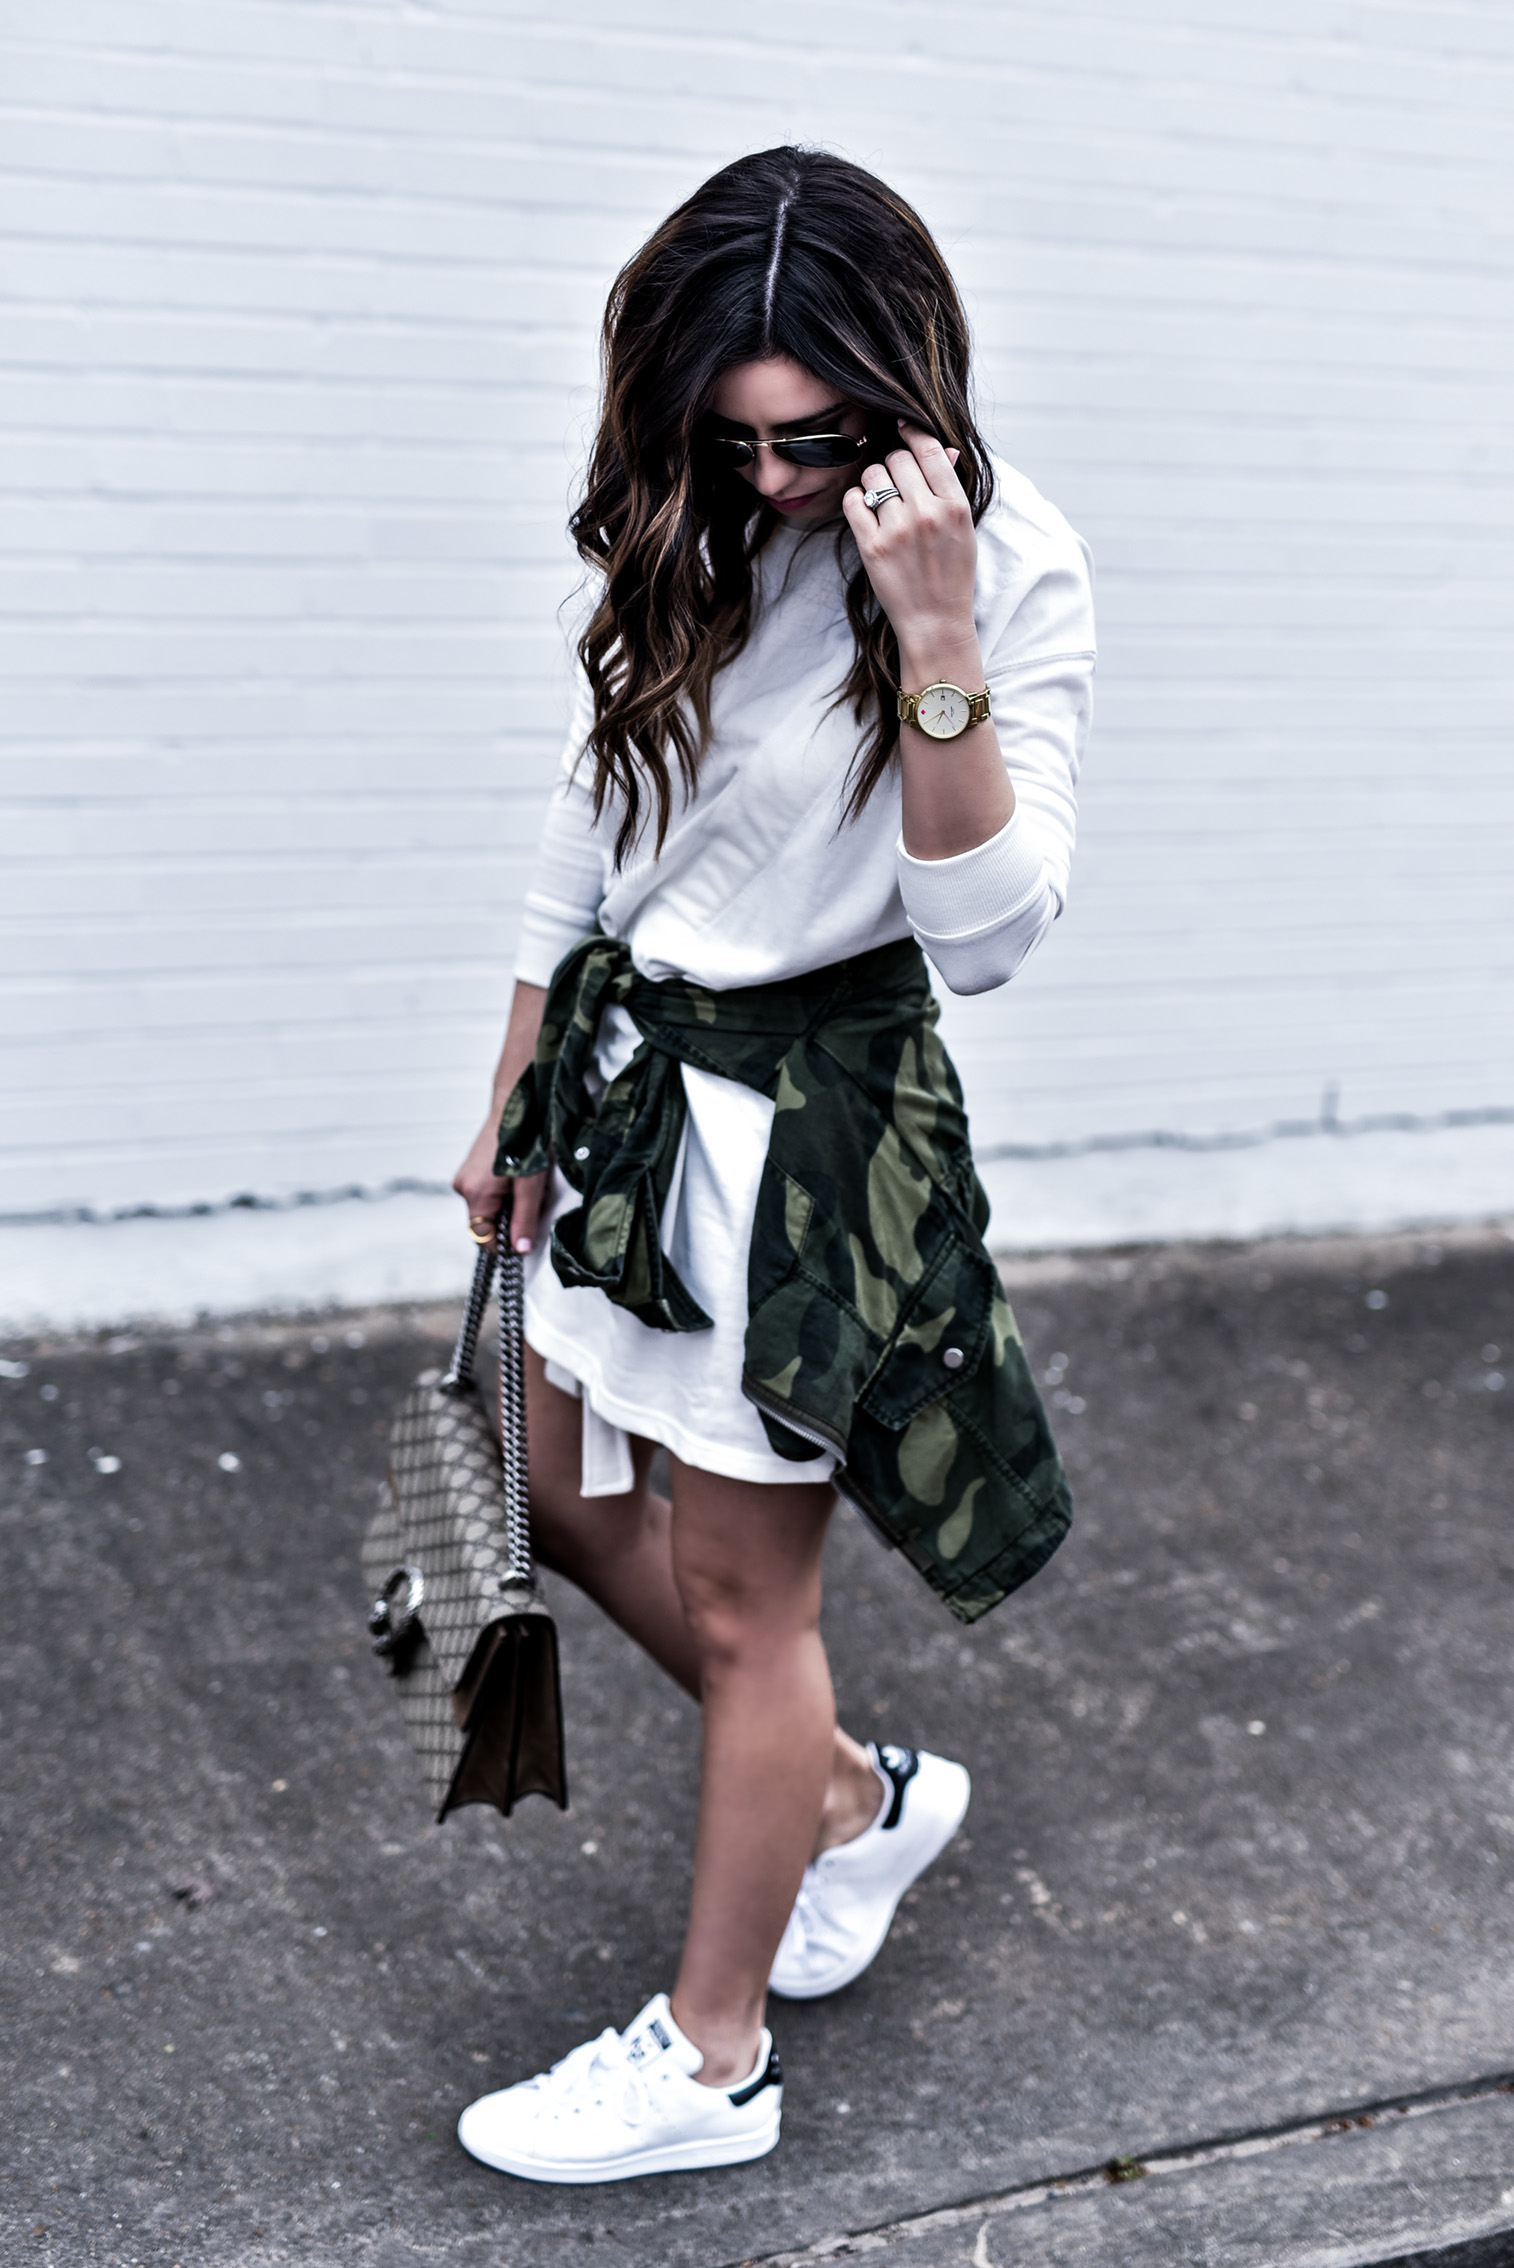 Houston fashion and lifestyle blogger Tiffany Jais wearing a t-shirt dress from ASOS and white Stan Smith sneakers   What's trending in women's fashion